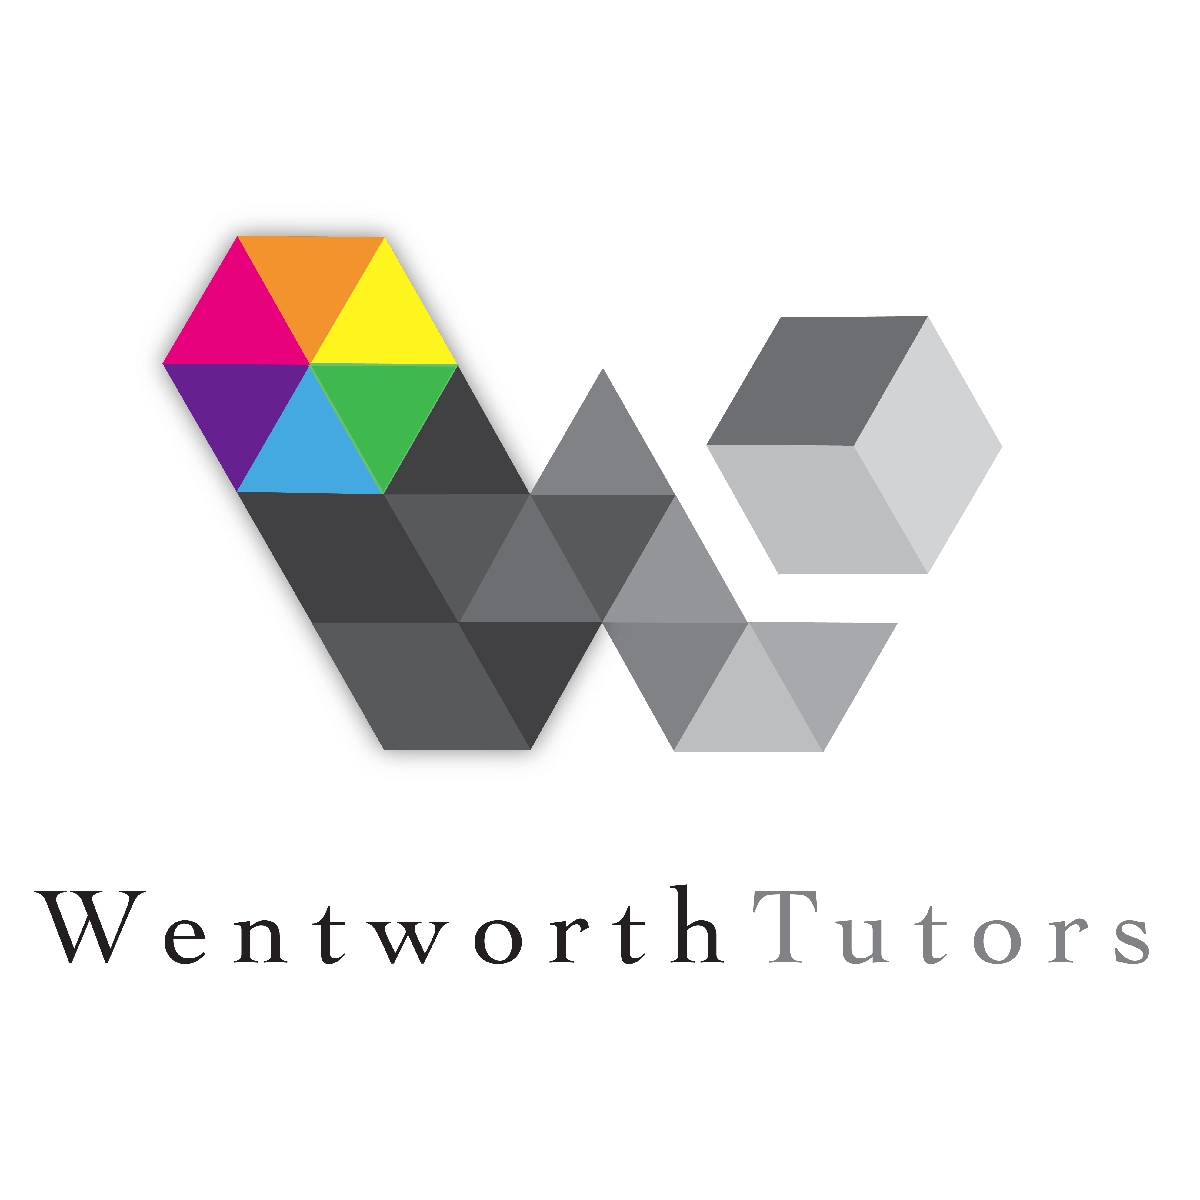 Wentworth Tutors - Premium Tutoring Agency in London